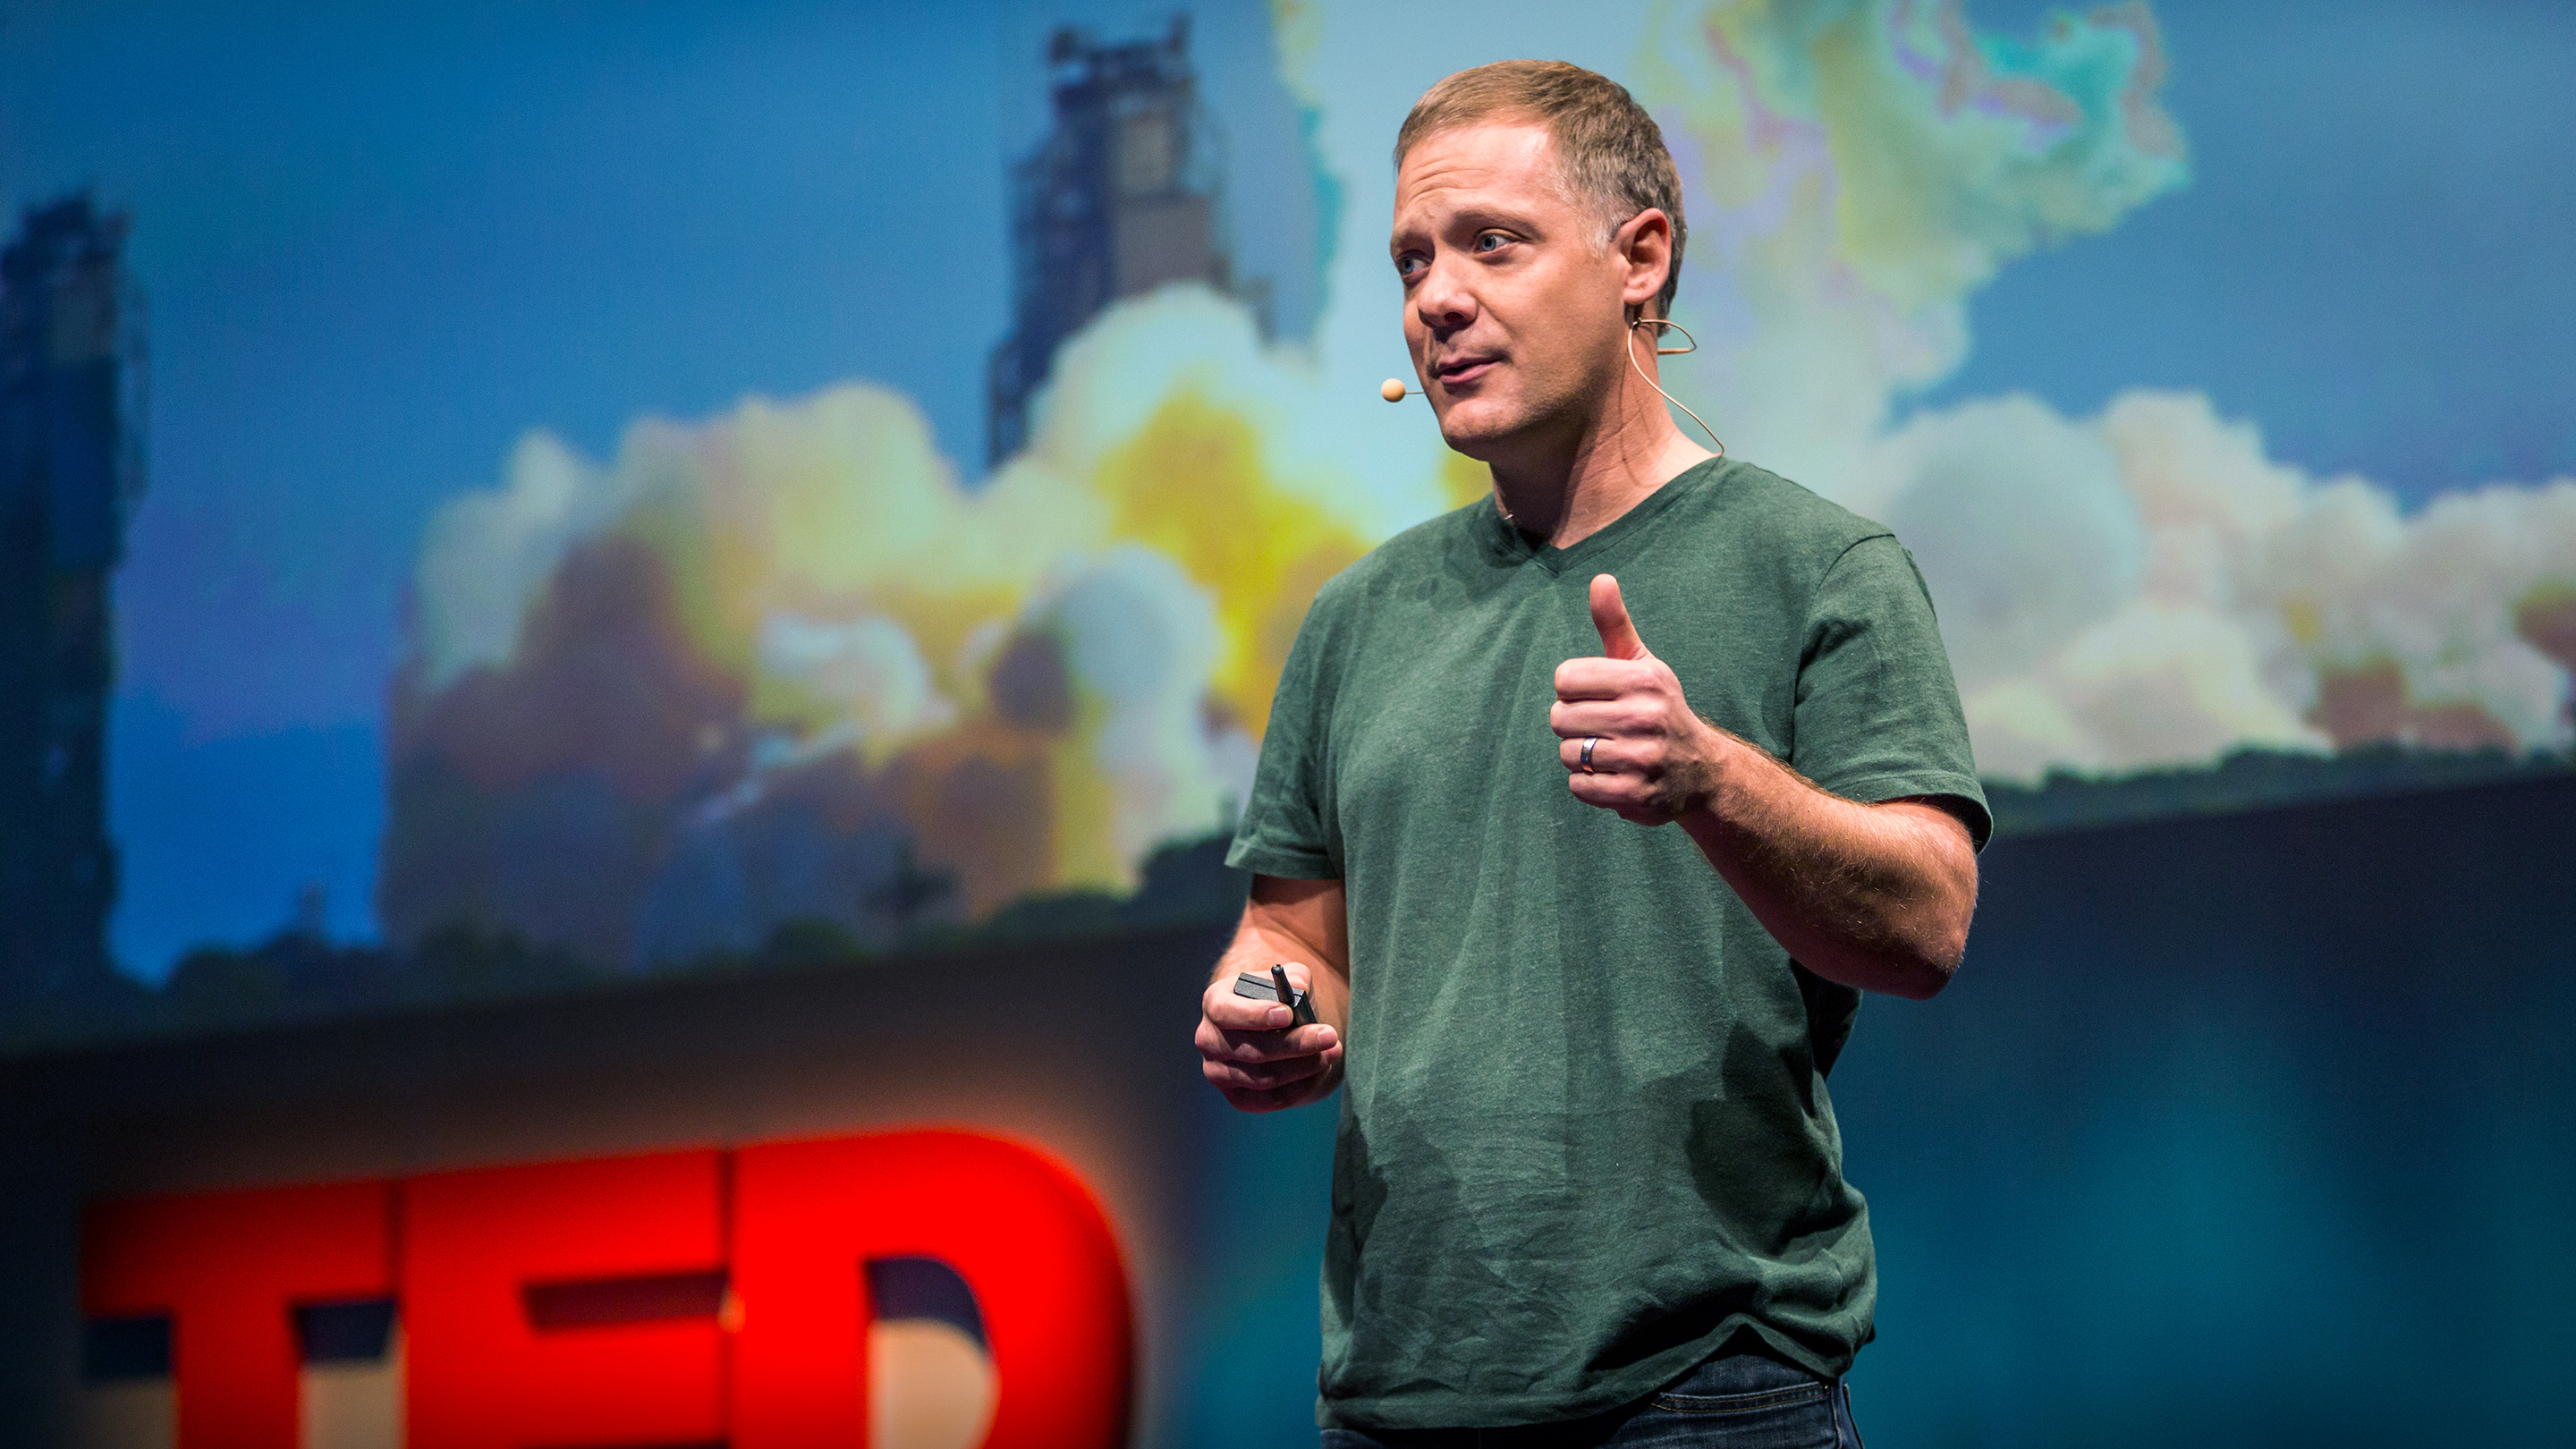 2a86c79f35d Steven Johnson: Where good ideas come from | TED Talk